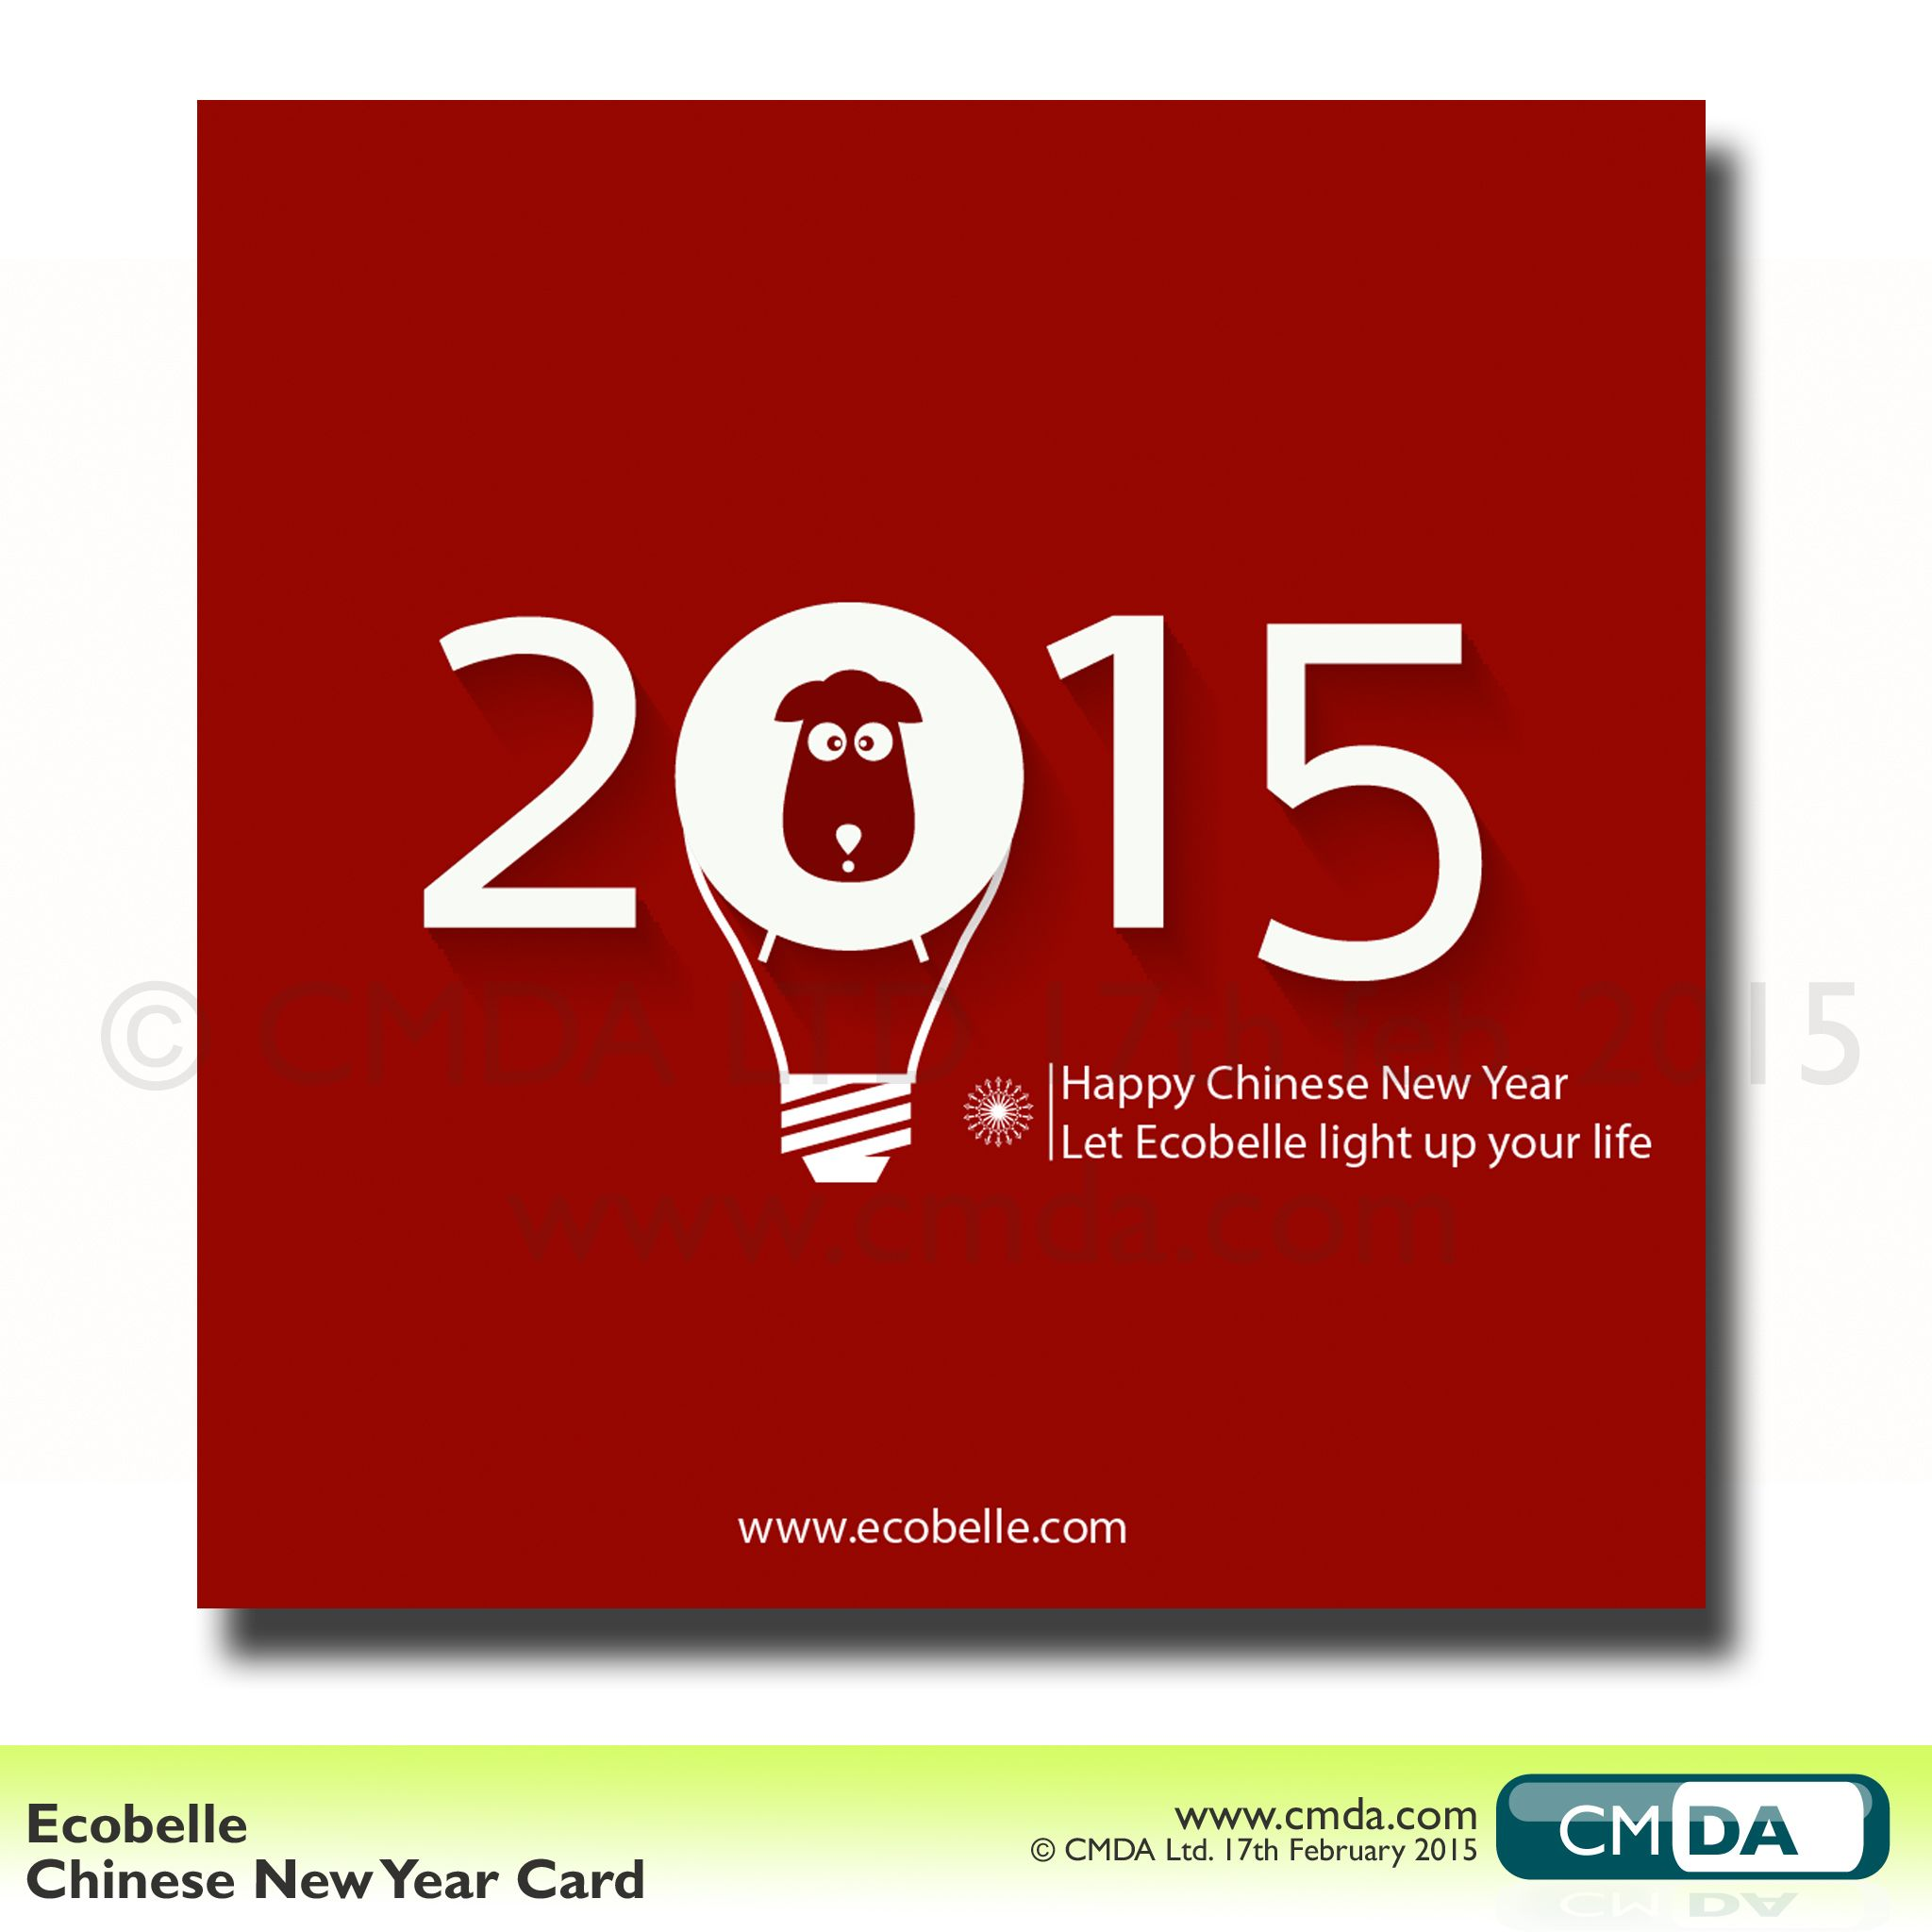 The Ecobelle Chinese New Year card for 2015, the year of the sheep! Featuring a sheep in the bulb, designed by CMDA Ltd.